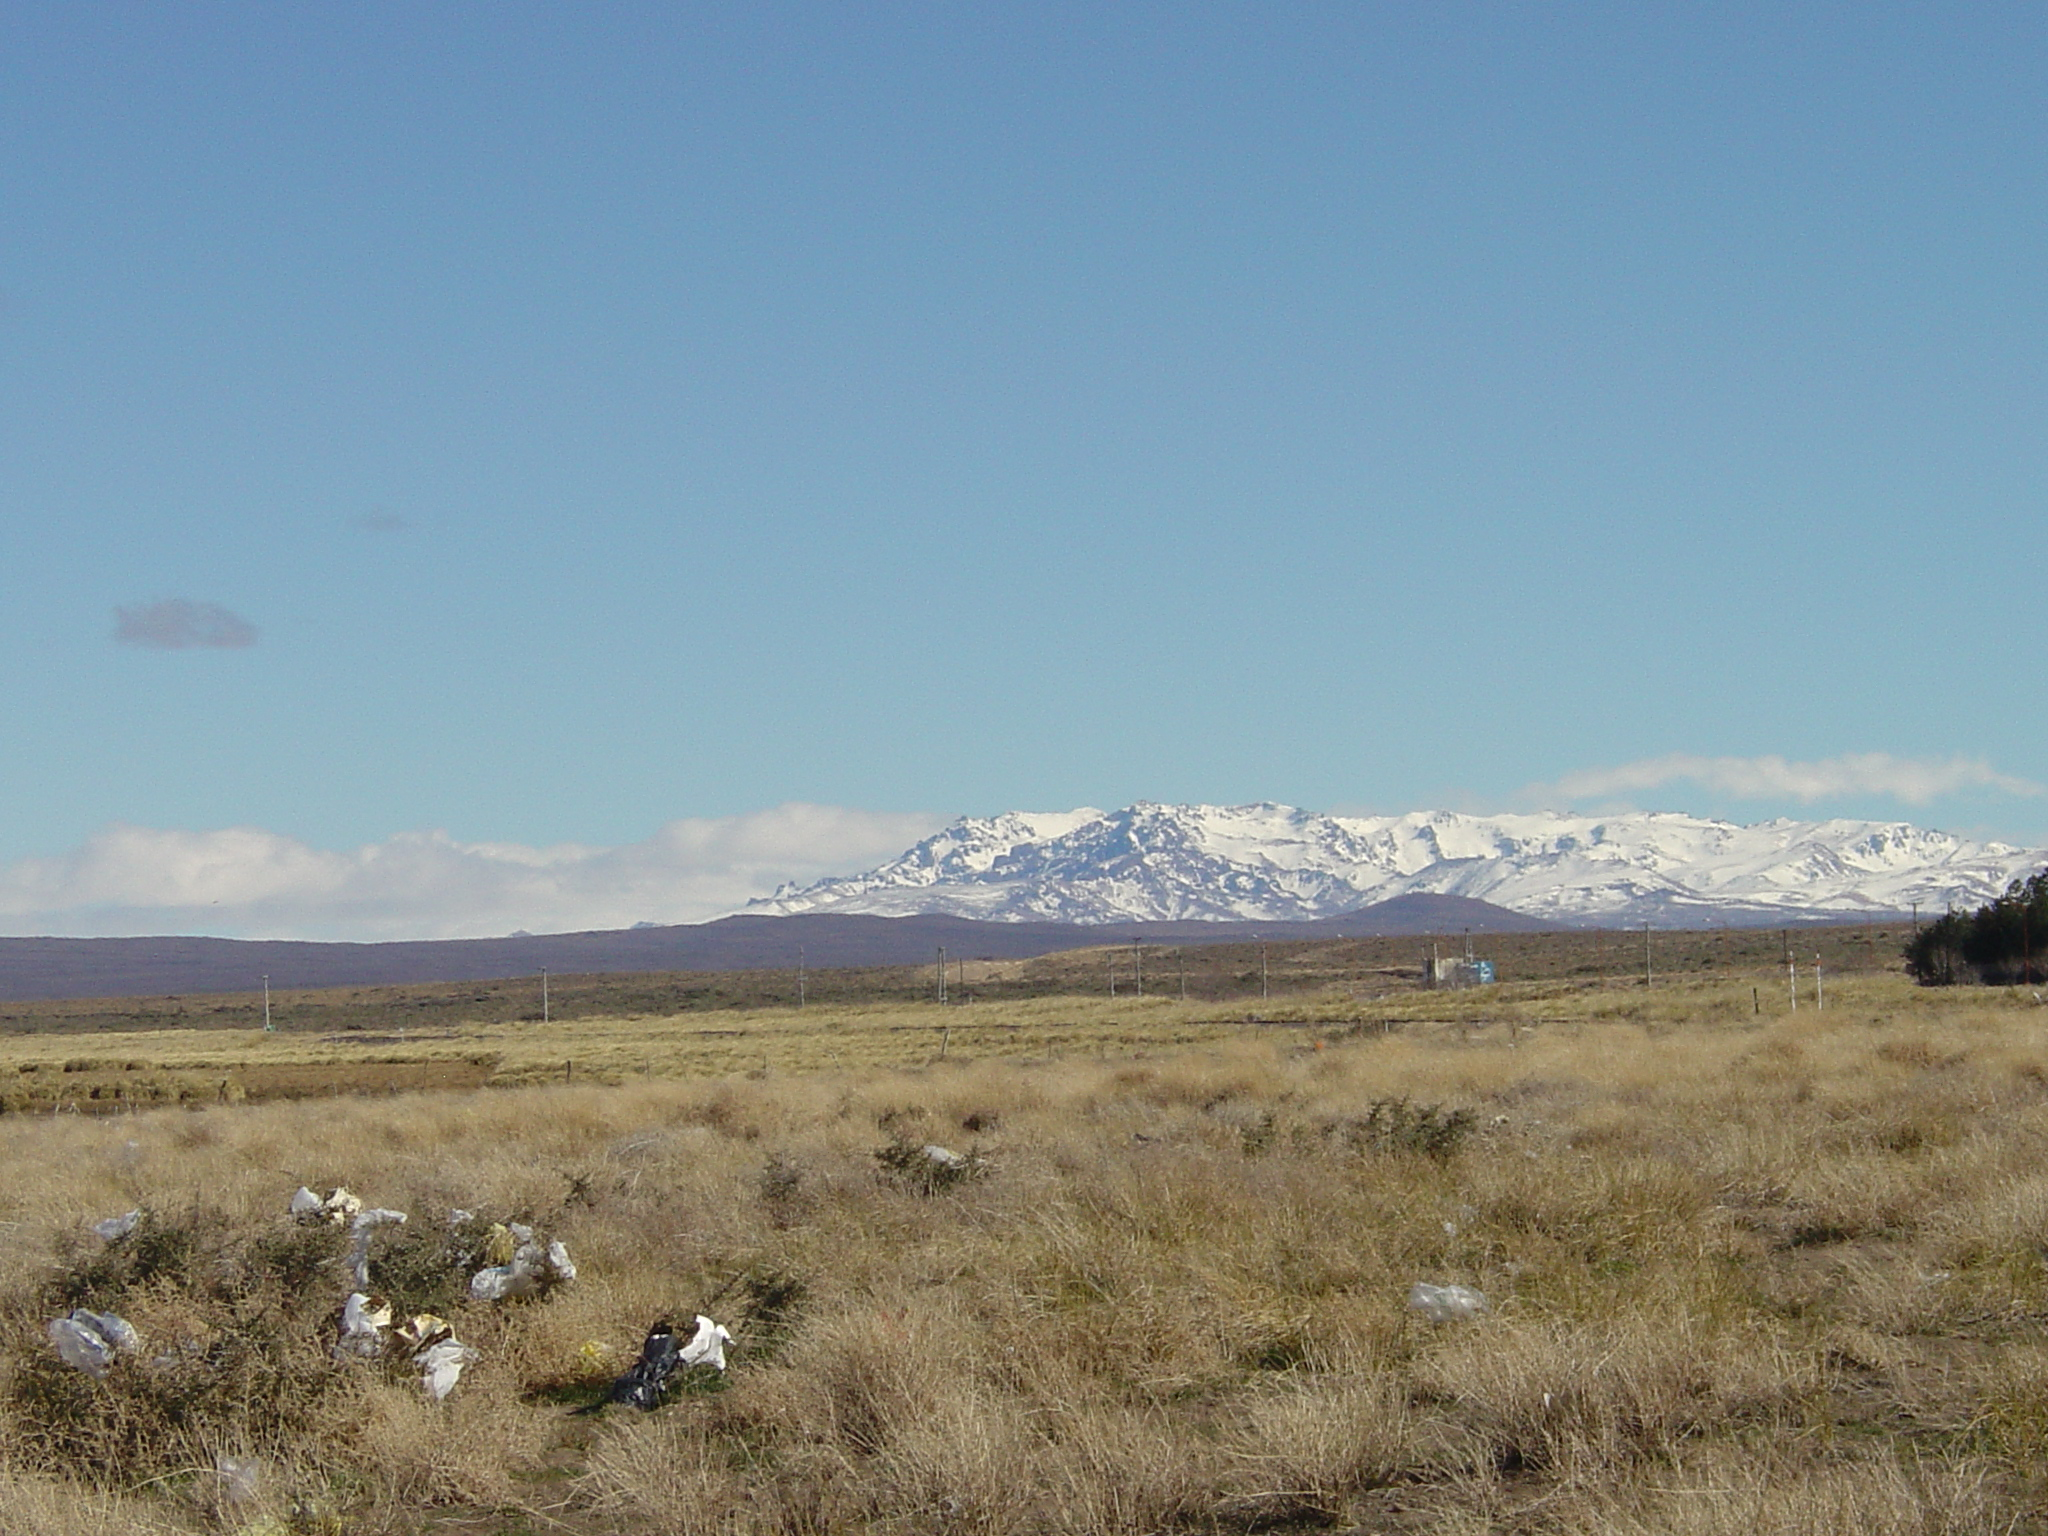 Zapala_08-21-08_006.jpg - The high desert, looking west towards Chile.